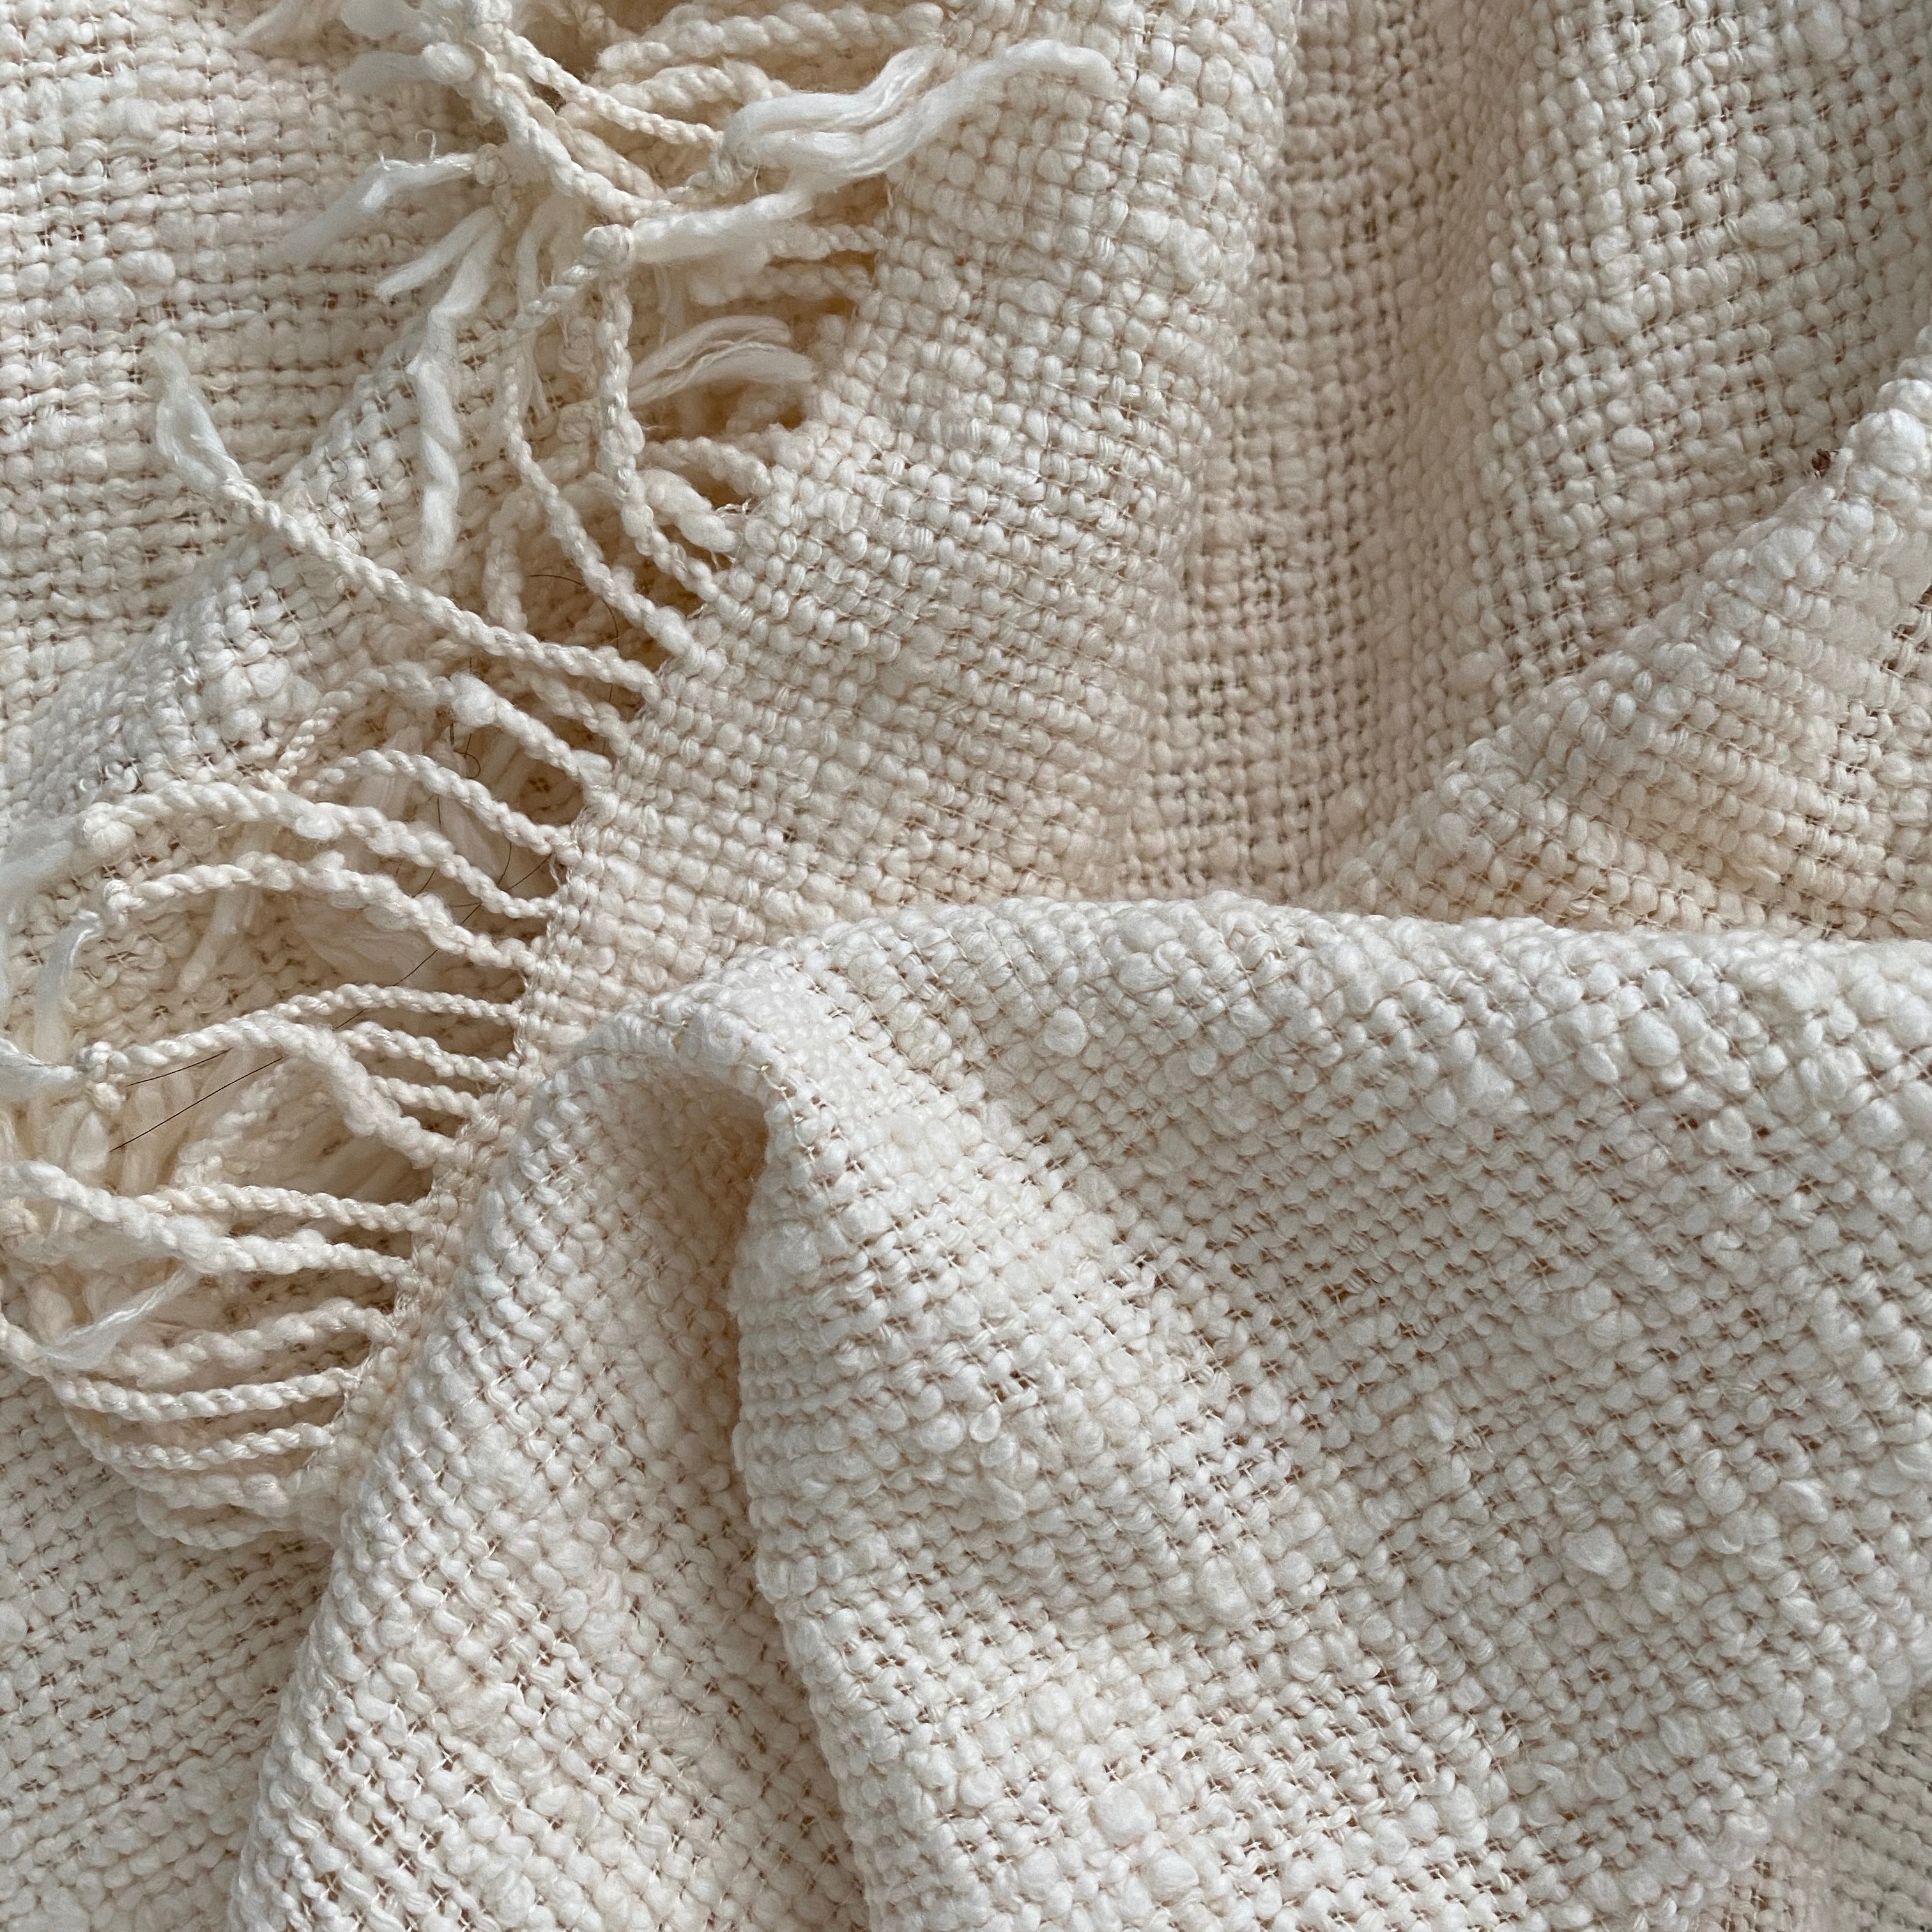 Cotton scarf from Cambodia